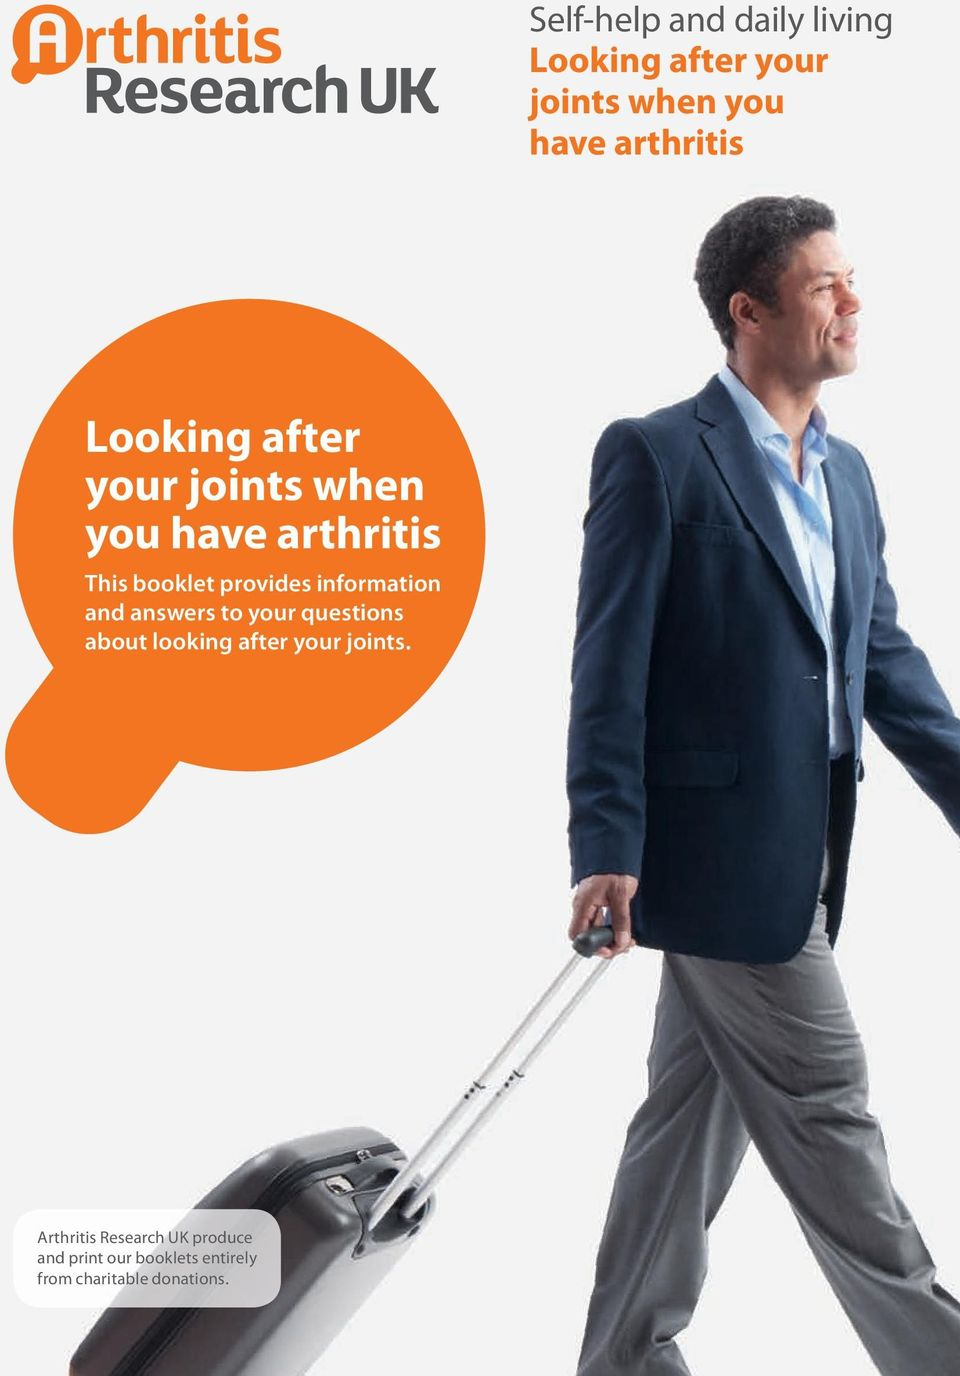 information and answers to your questions about looking after your joints.